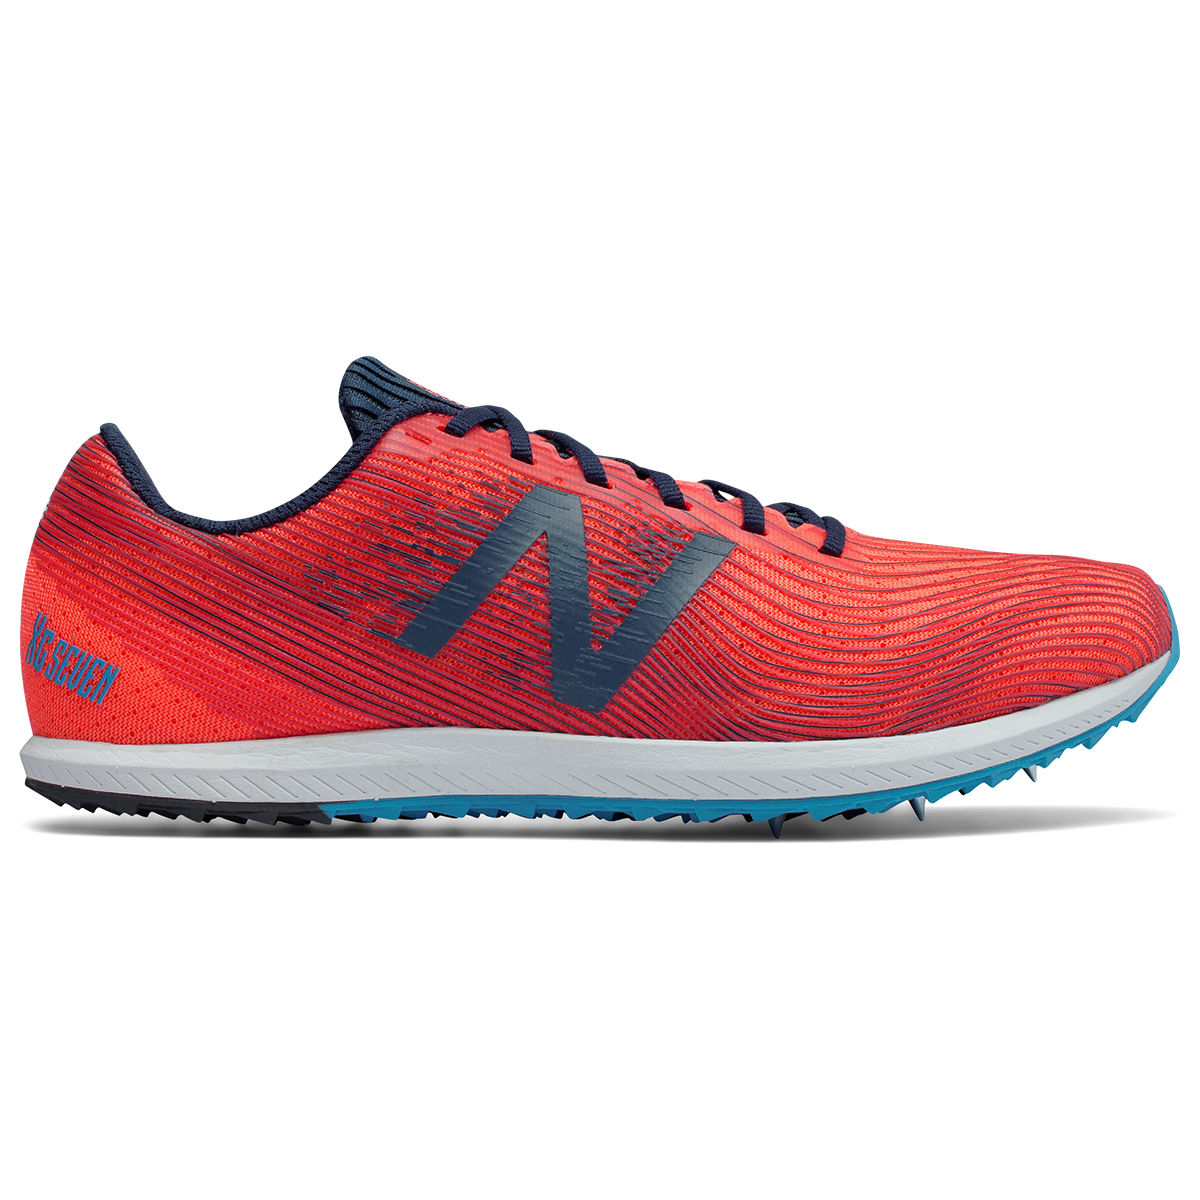 New Balance Women's Cross Country Spike - Zapatillas de atletismo